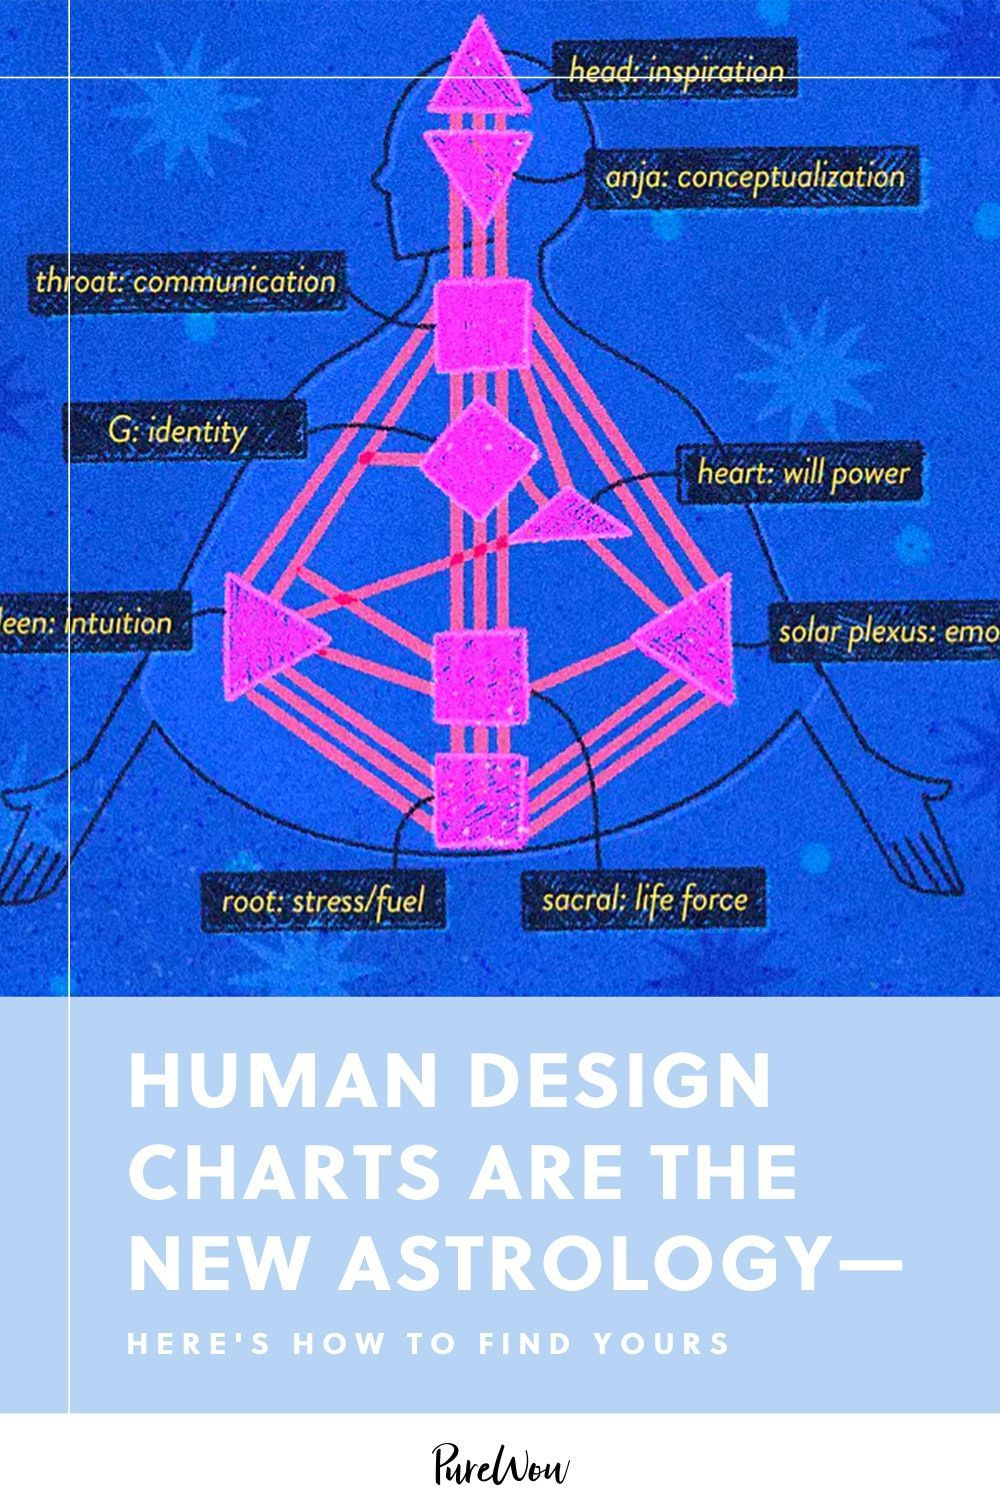 Human Design Charts Are the New Astrology—Here's How to